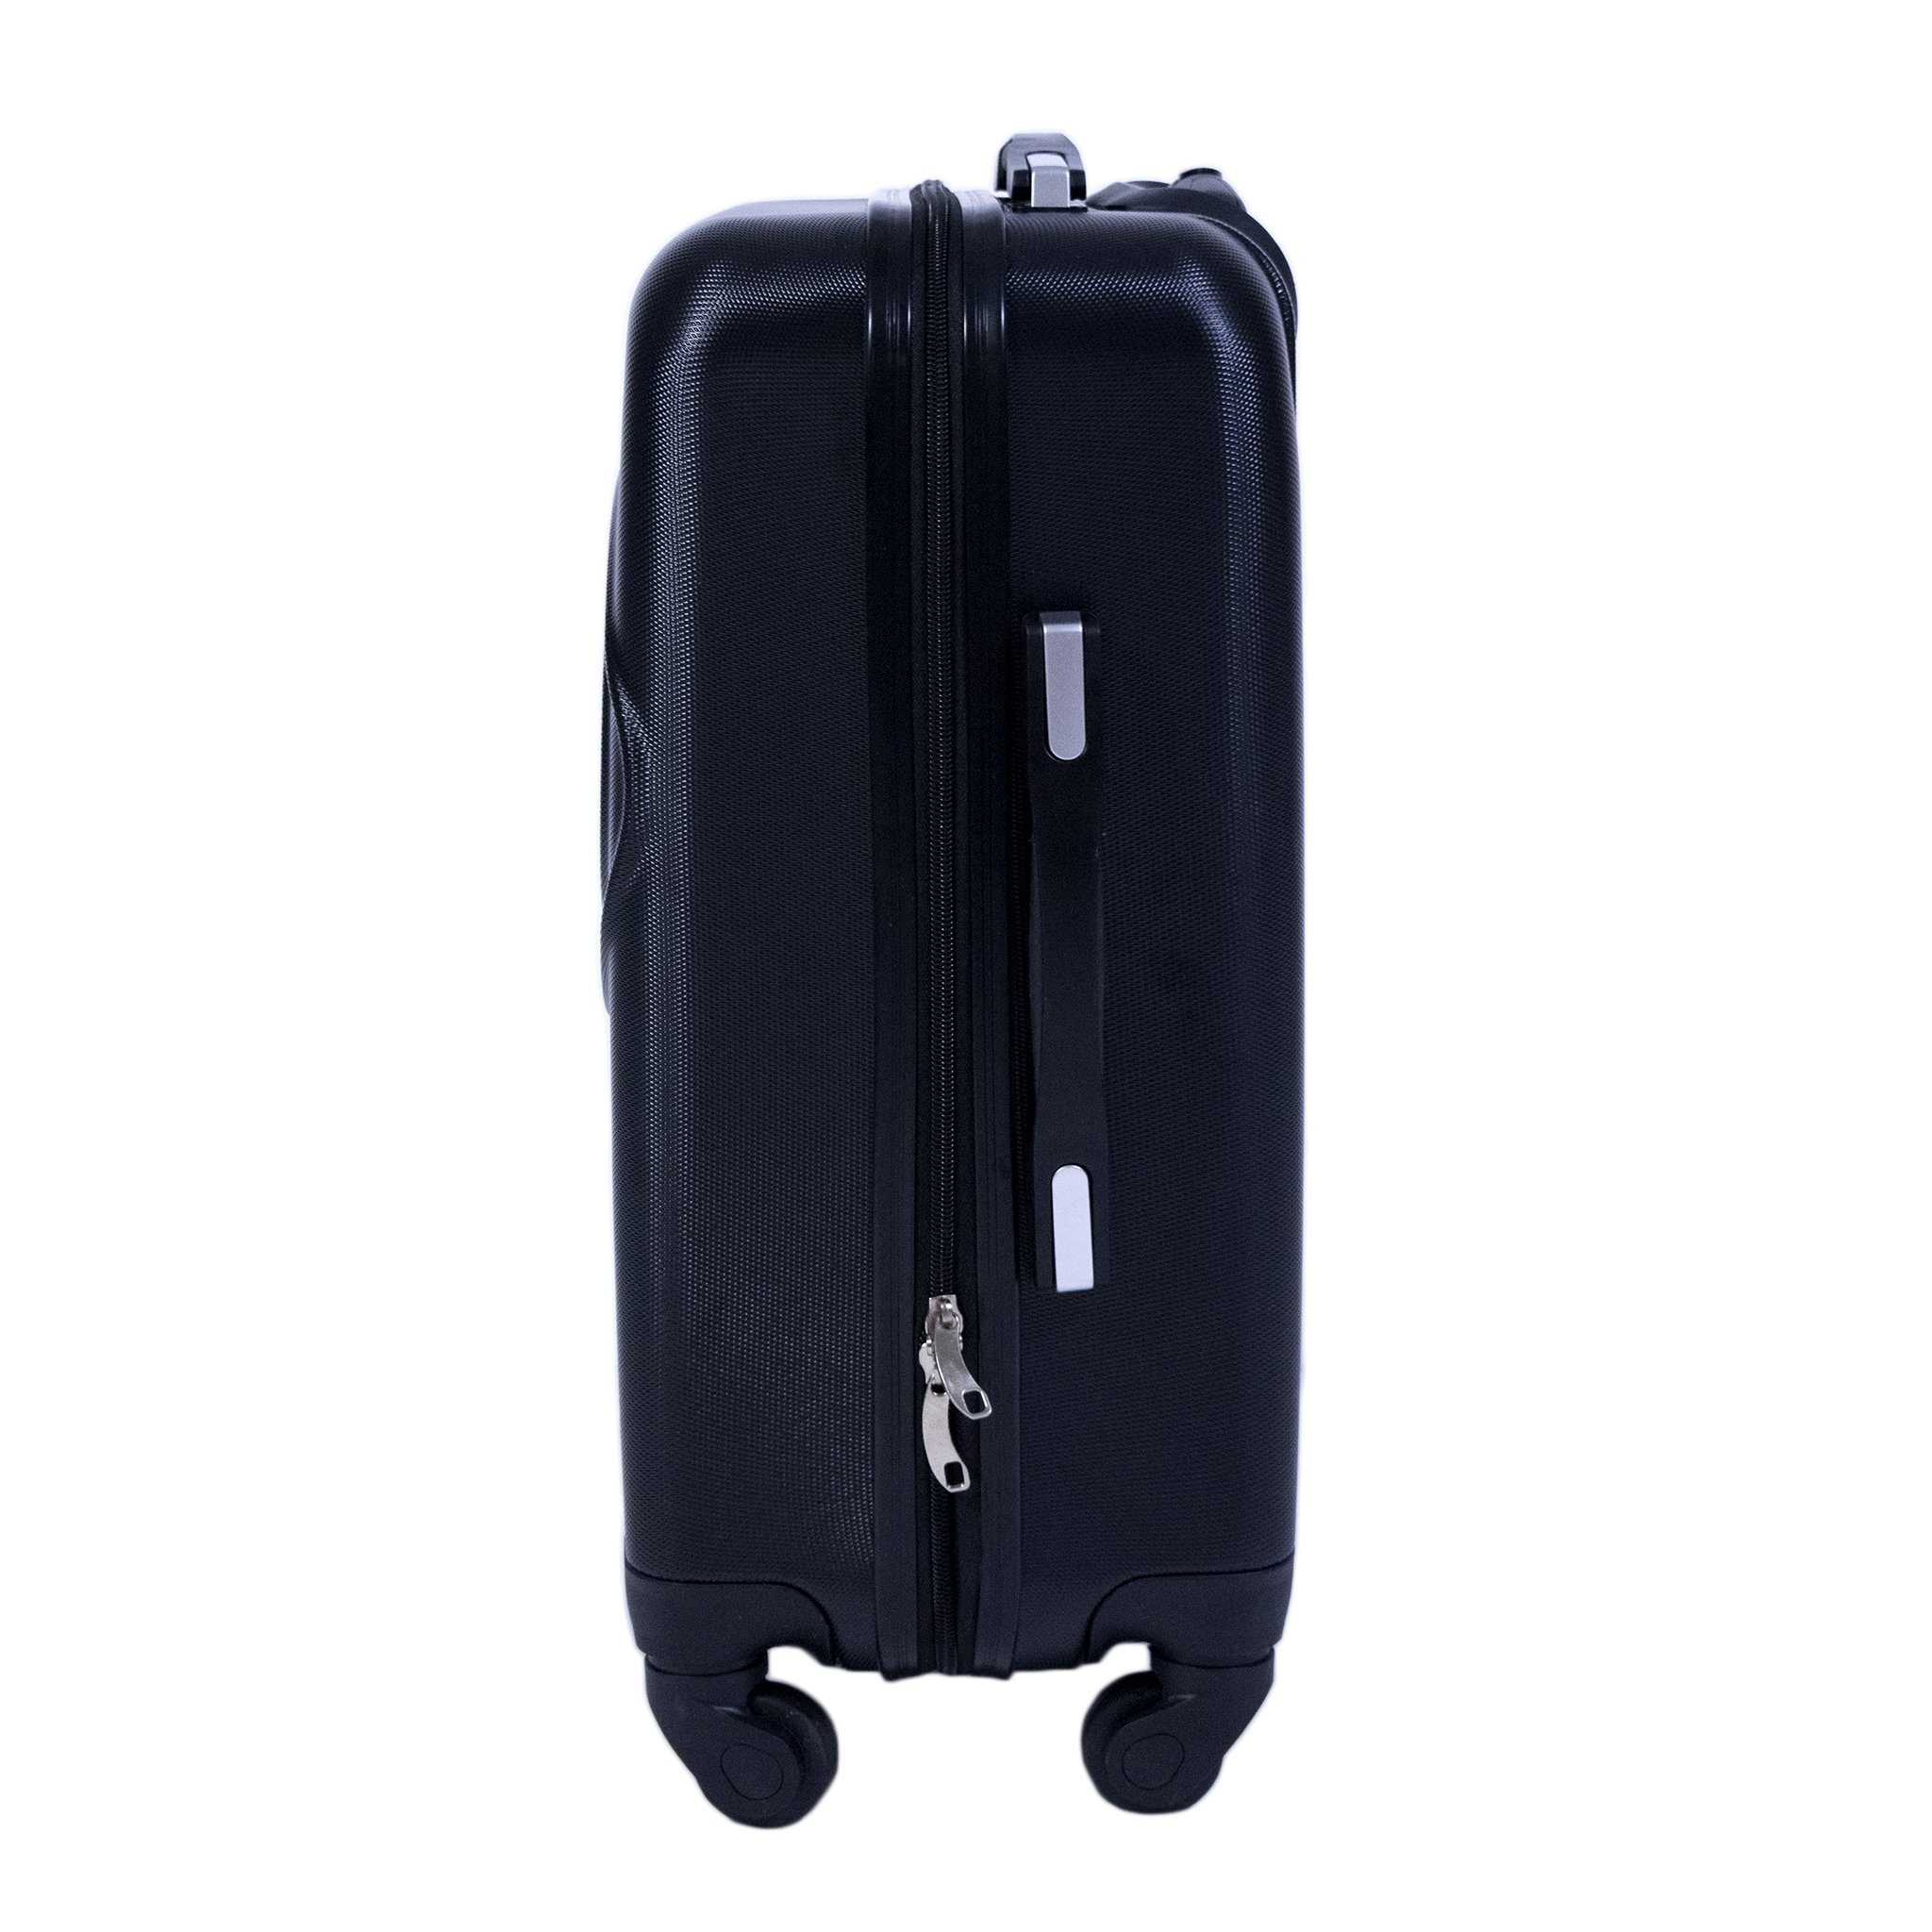 Batman 211n Hardsided Luggage Spinner, Black by Ful (Image #3)